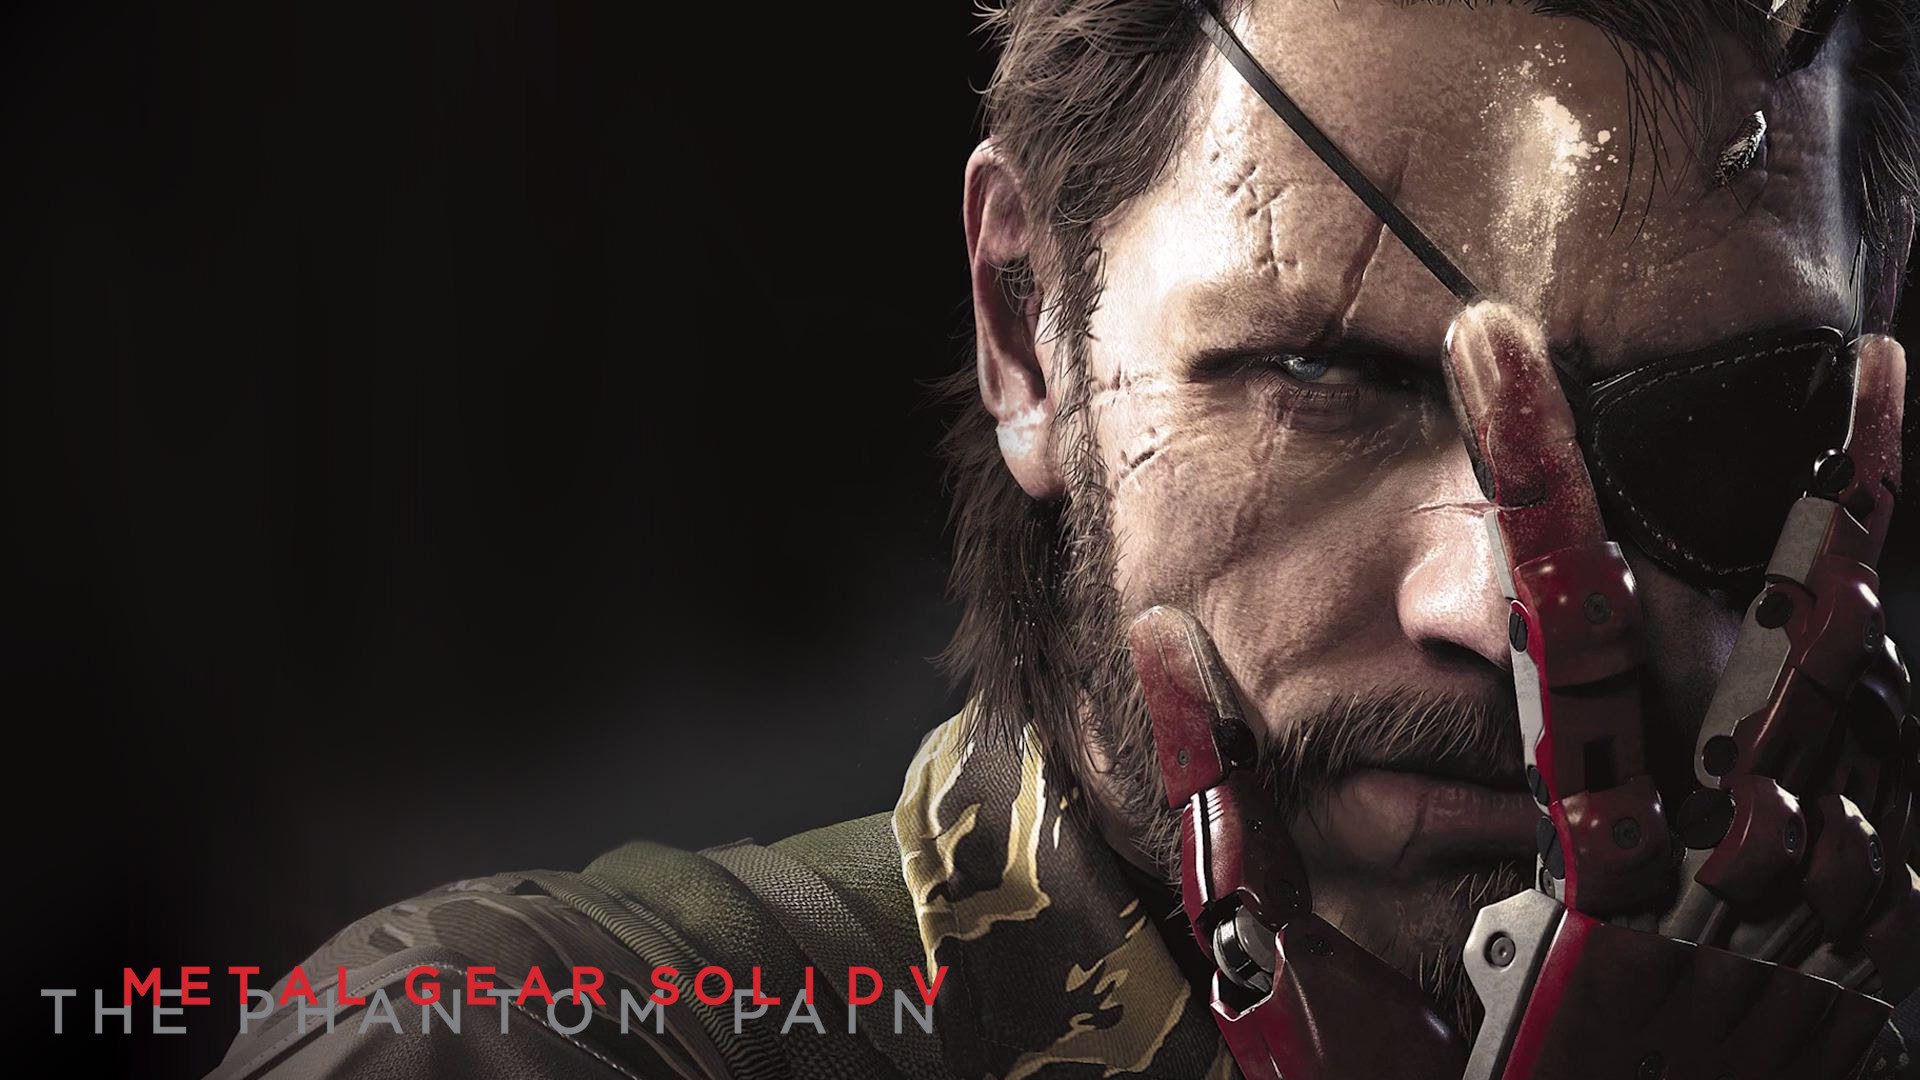 Mgs5 Iphone Wallpaper 75 Images